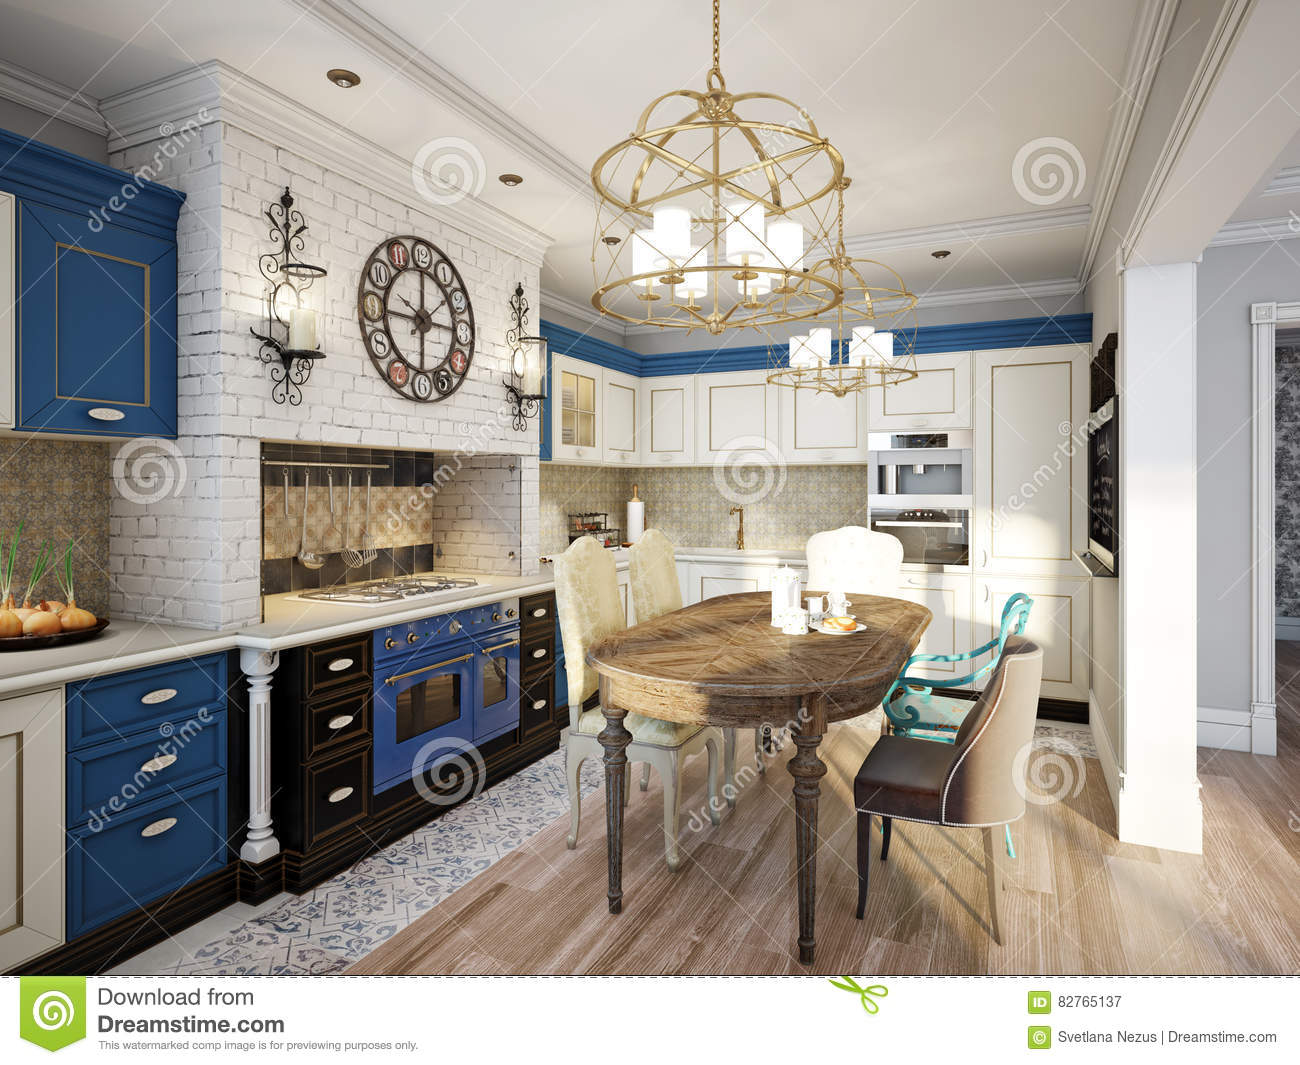 Kitchen in style of provence stock illustration image for Provence kitchen design